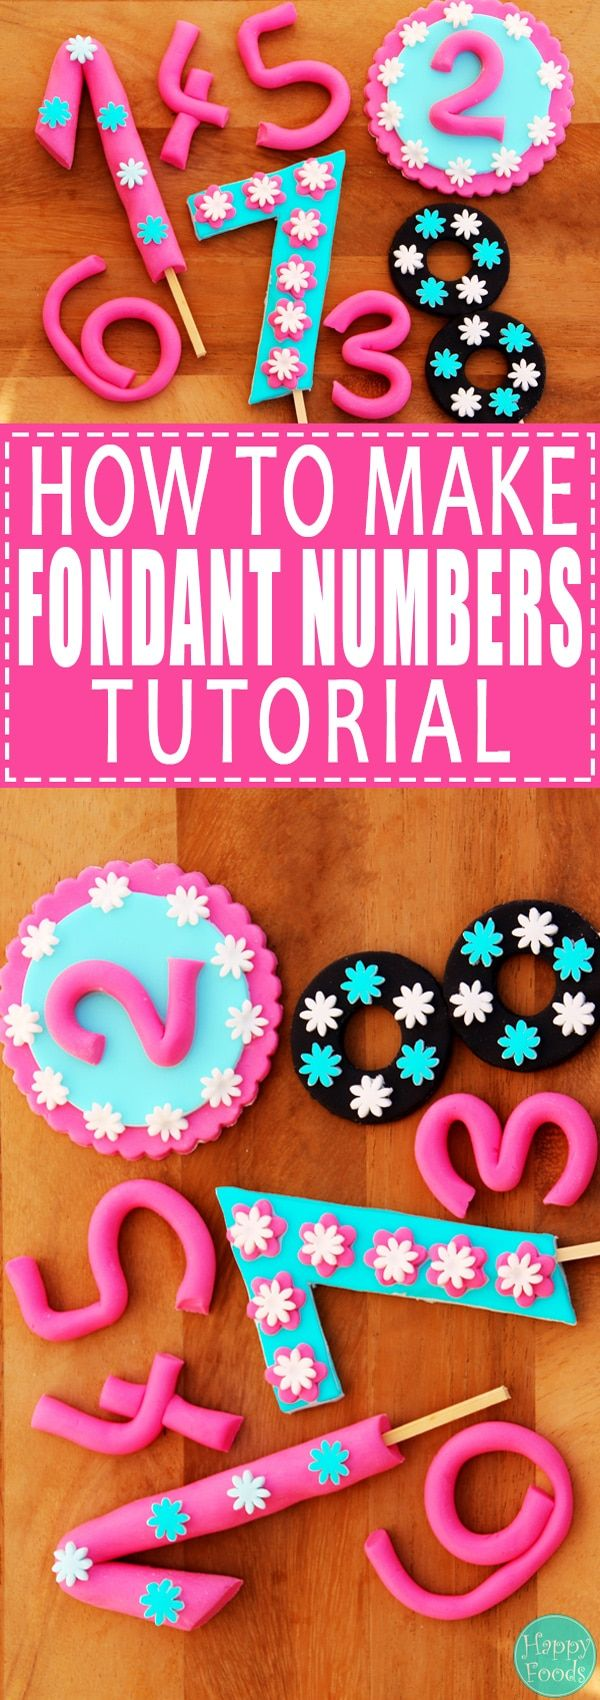 Cake Decorating Number Of Issues : 25+ best ideas about Fondant Numbers on Pinterest Easy ...